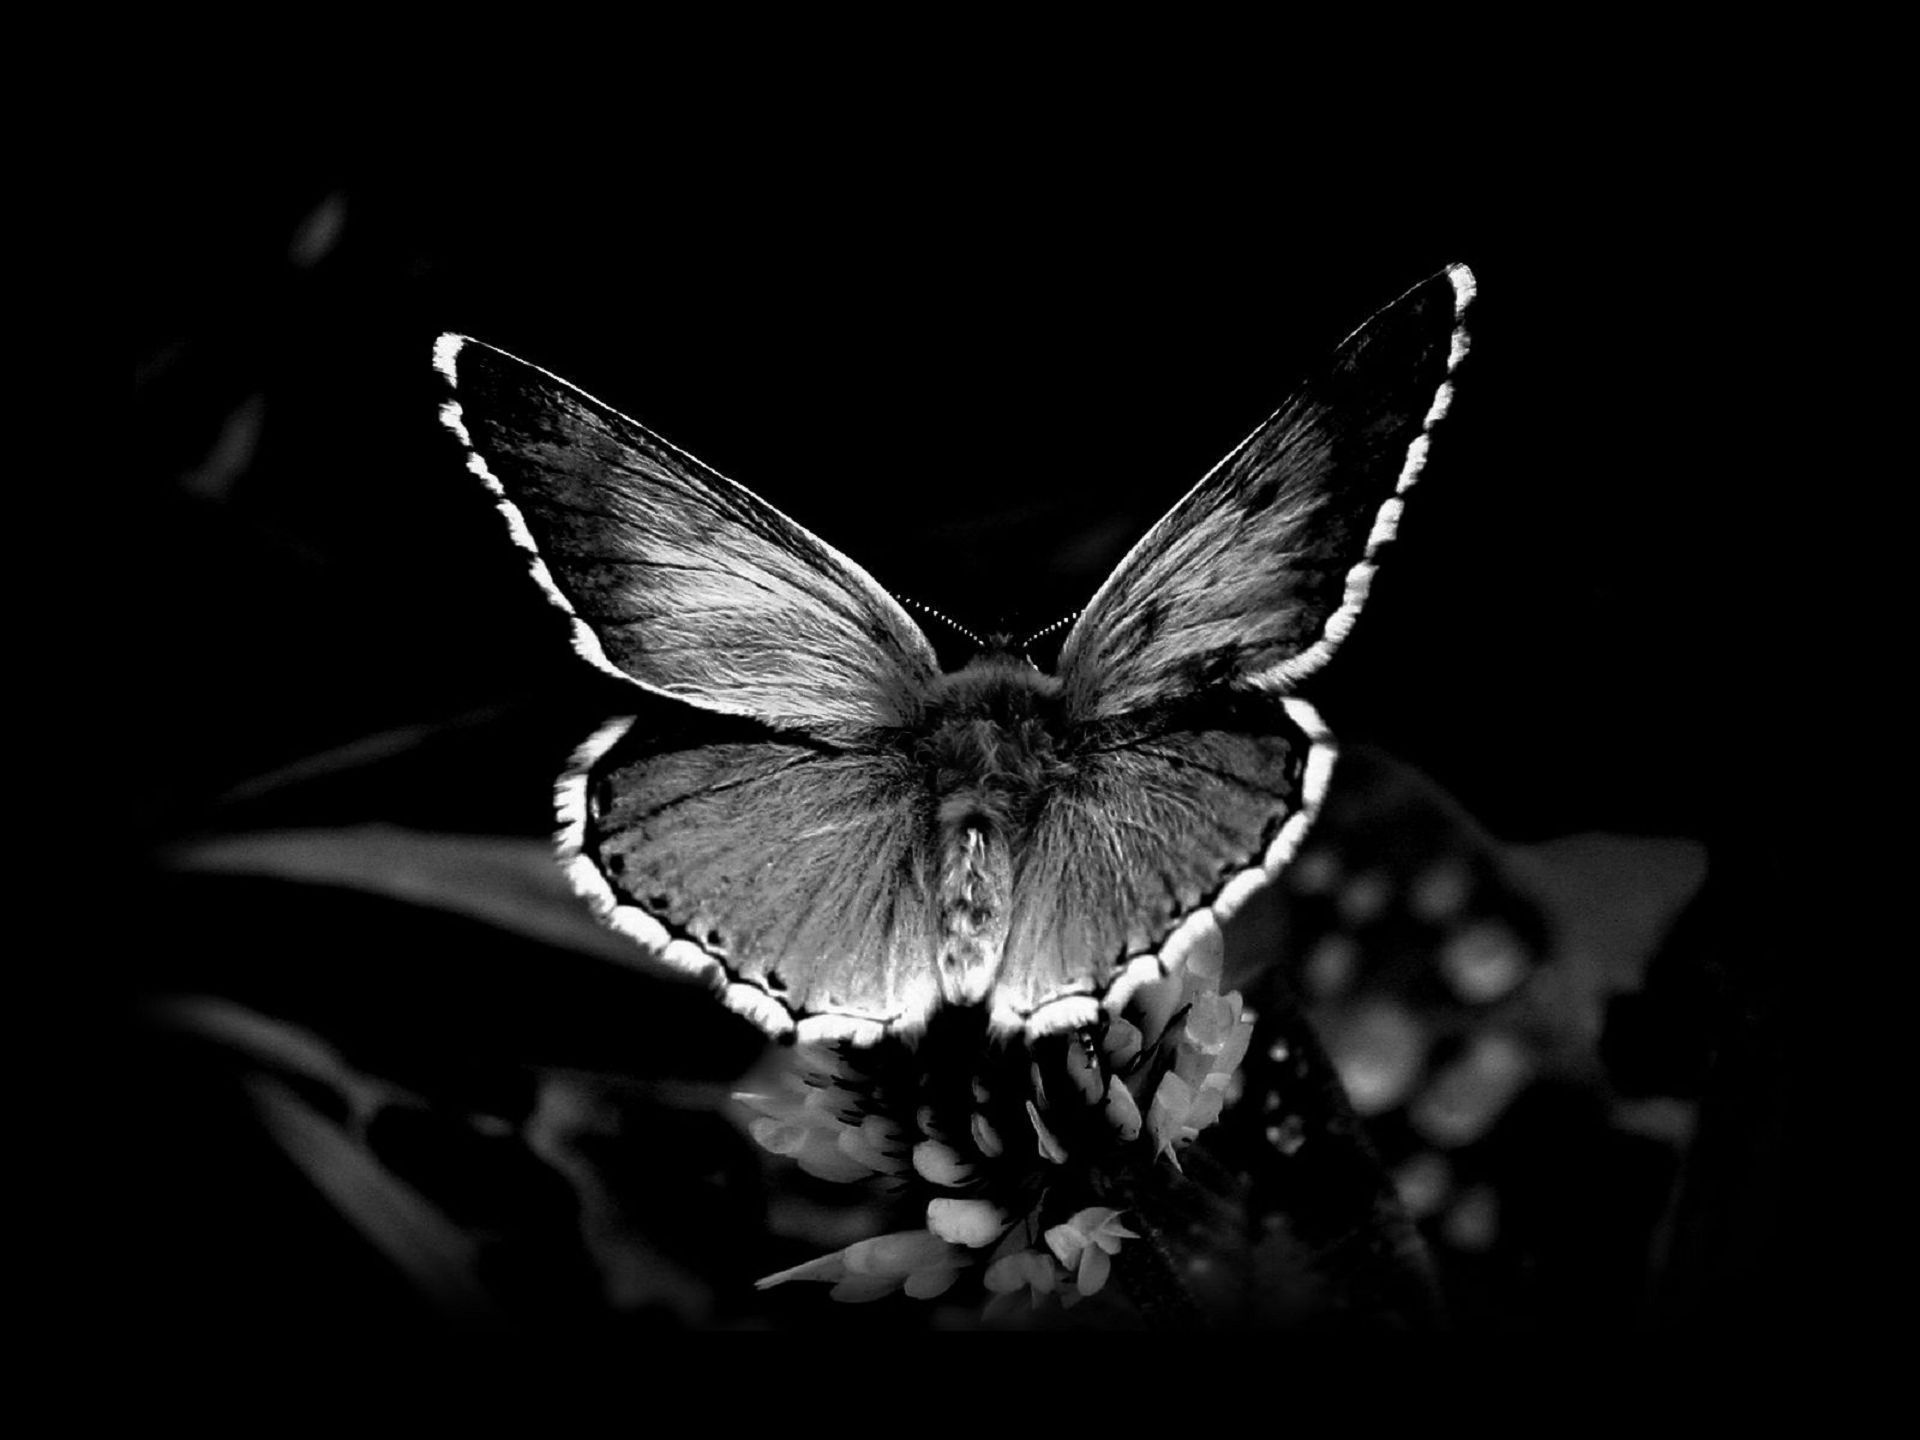 Black Butterfly Images